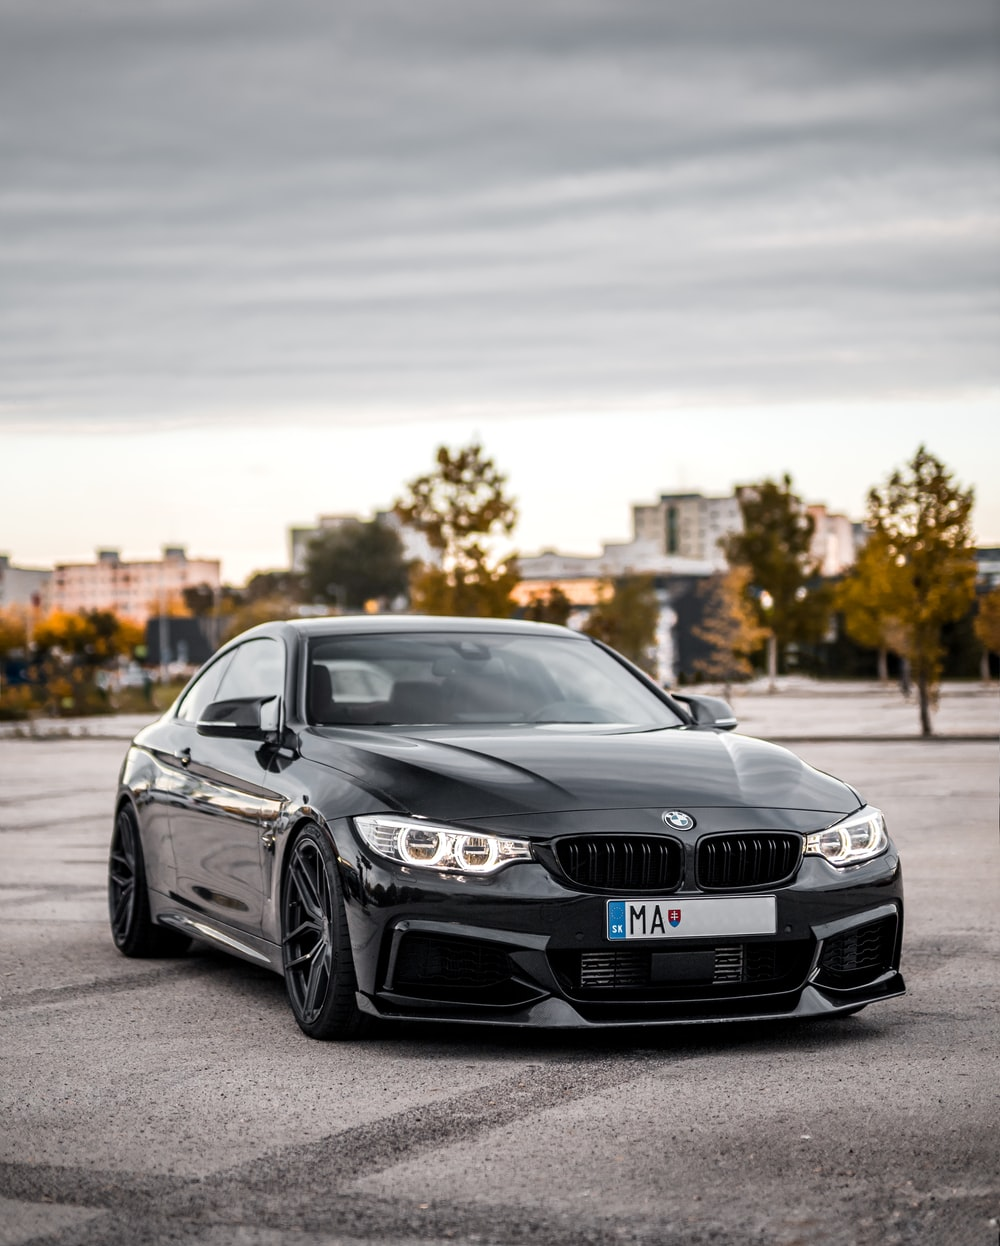 parked black BMW coupe